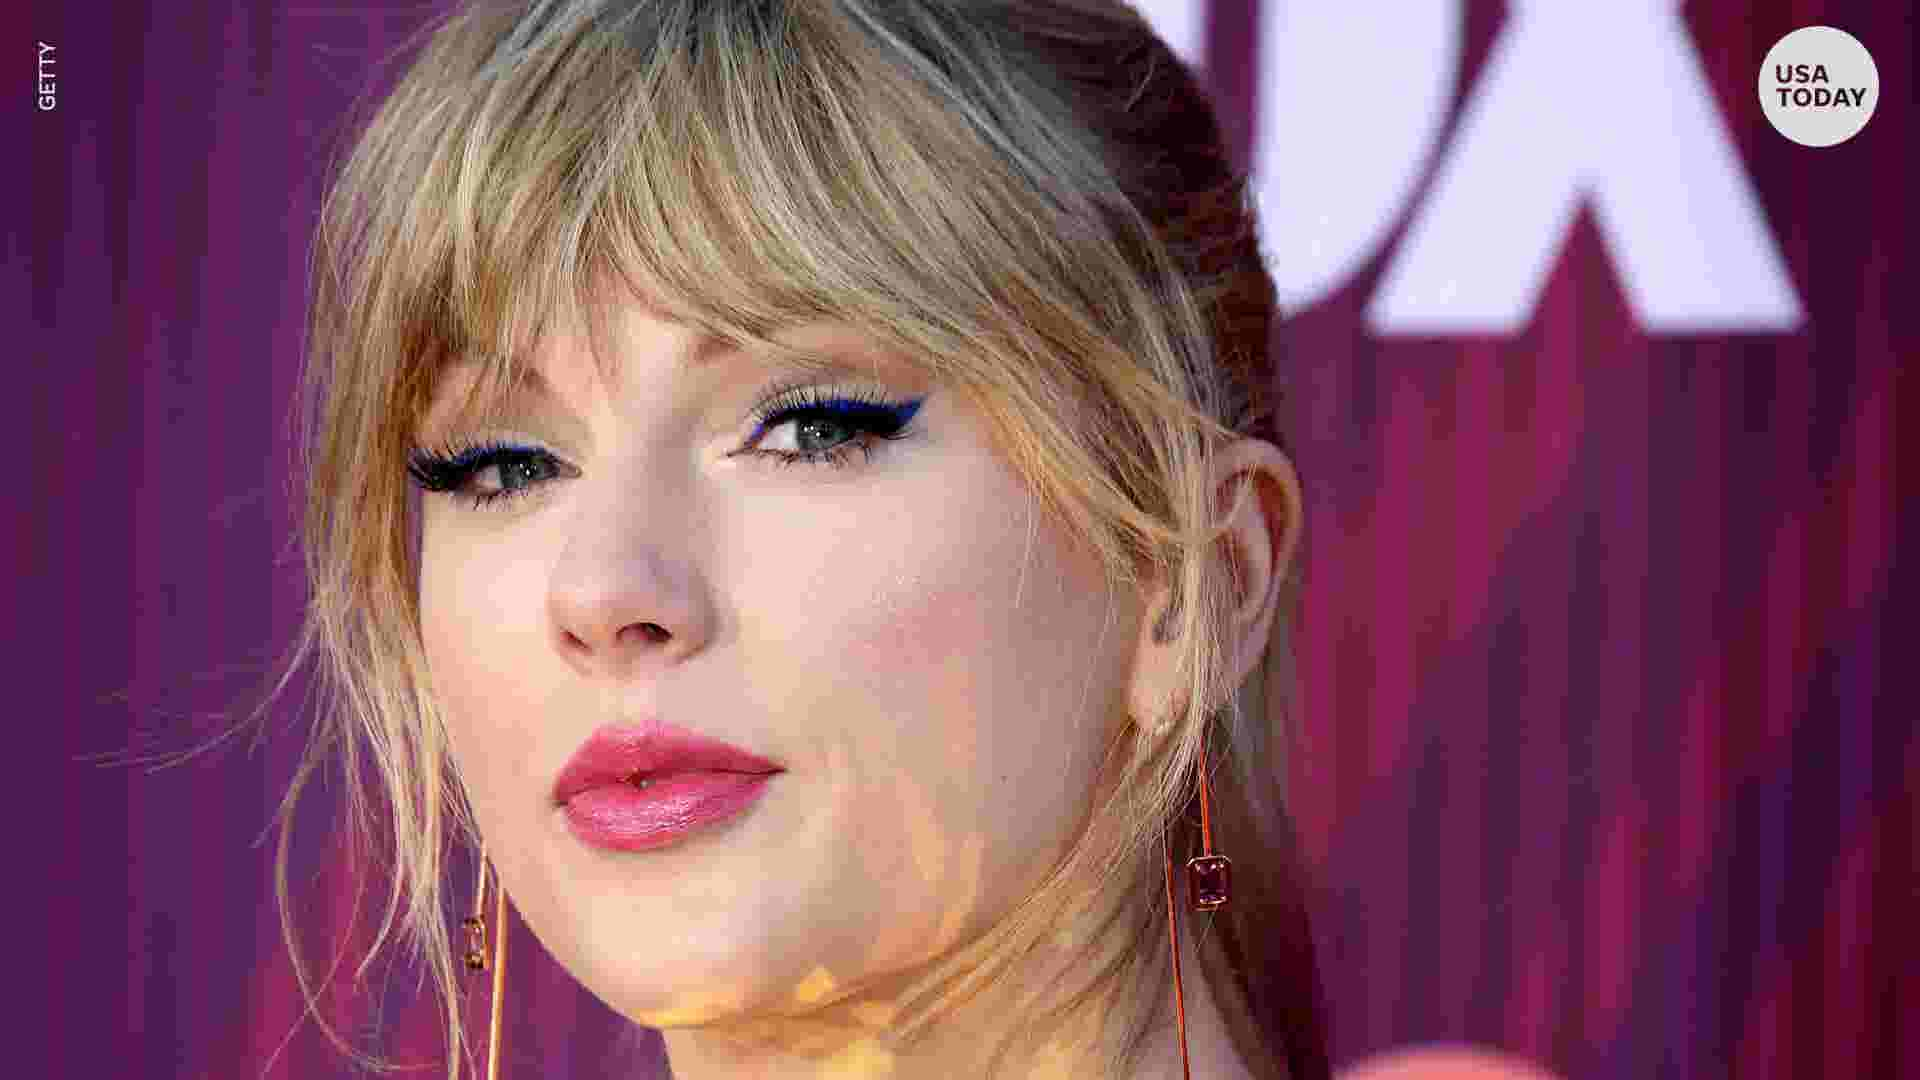 Taylor Swift slammed by Justin Bieber amid music executive drama